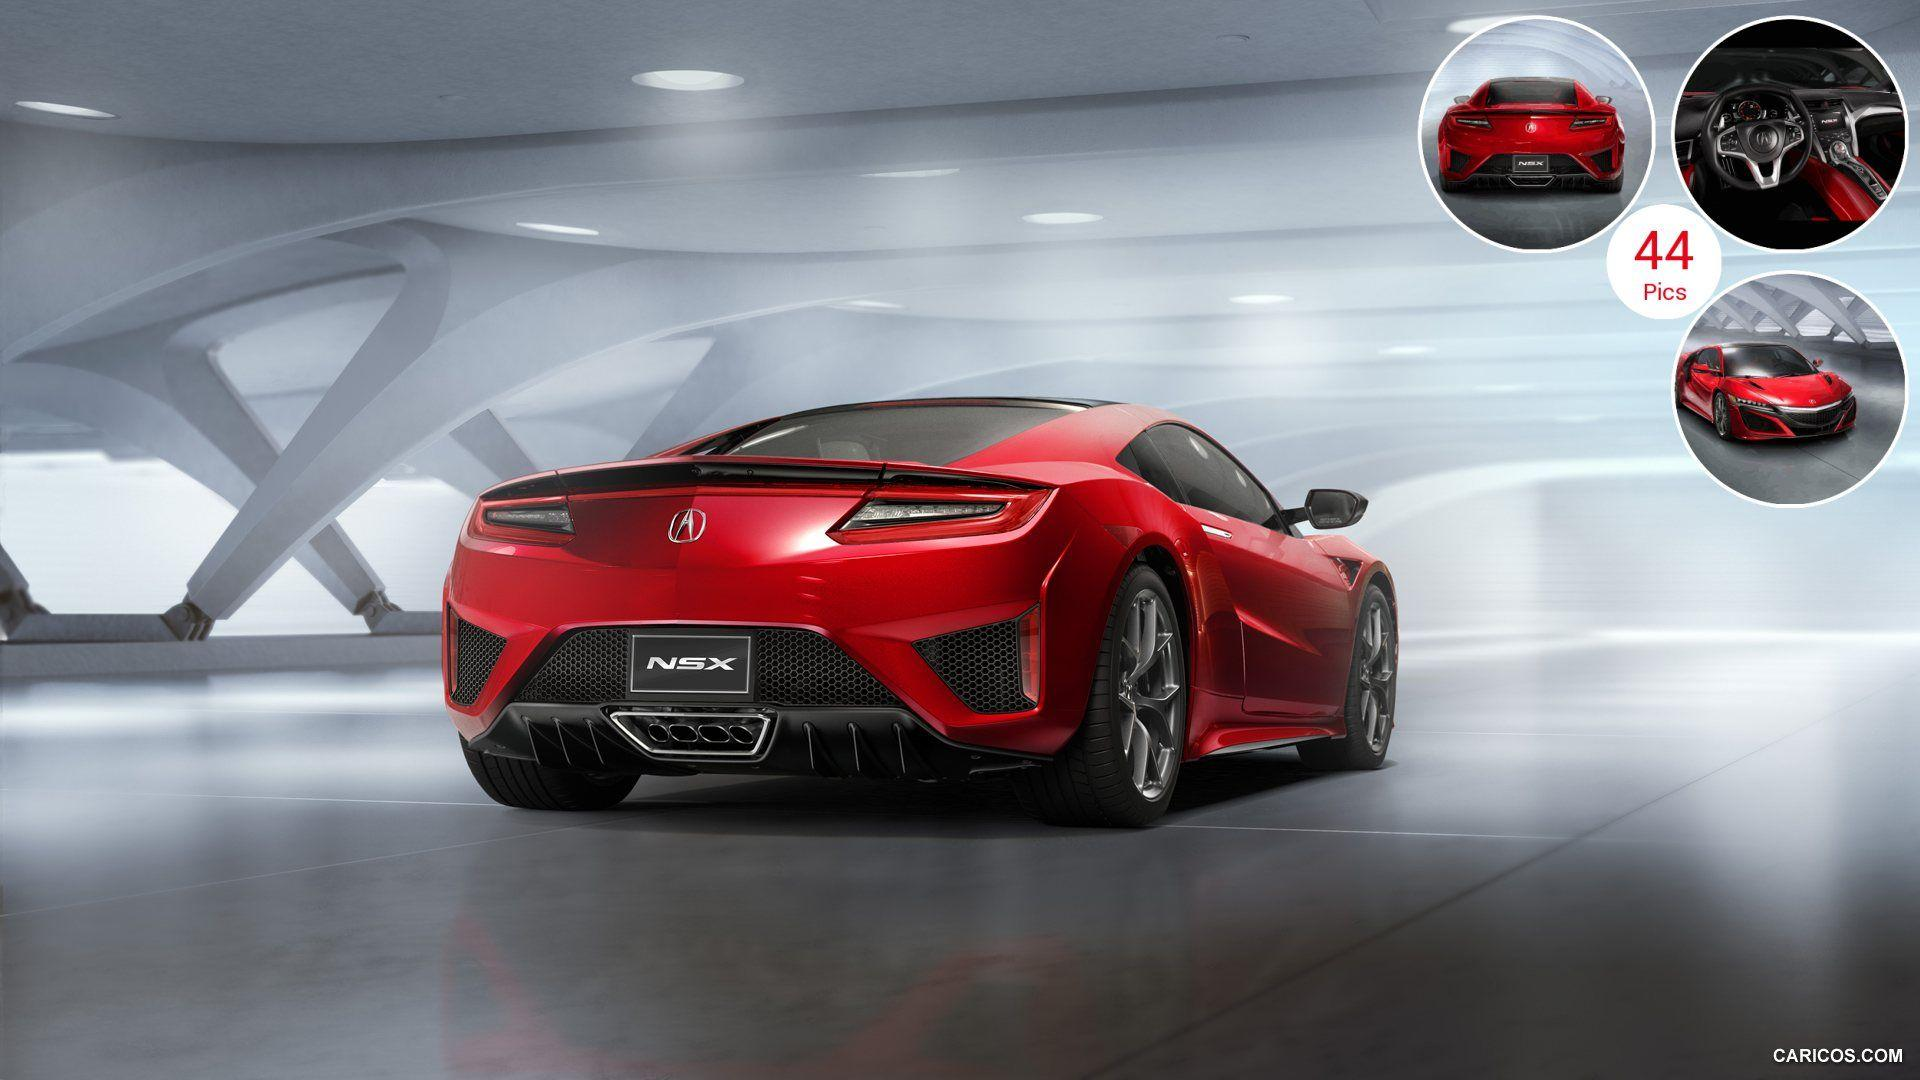 2016 Acura NSX - Rear | HD Wallpaper #2